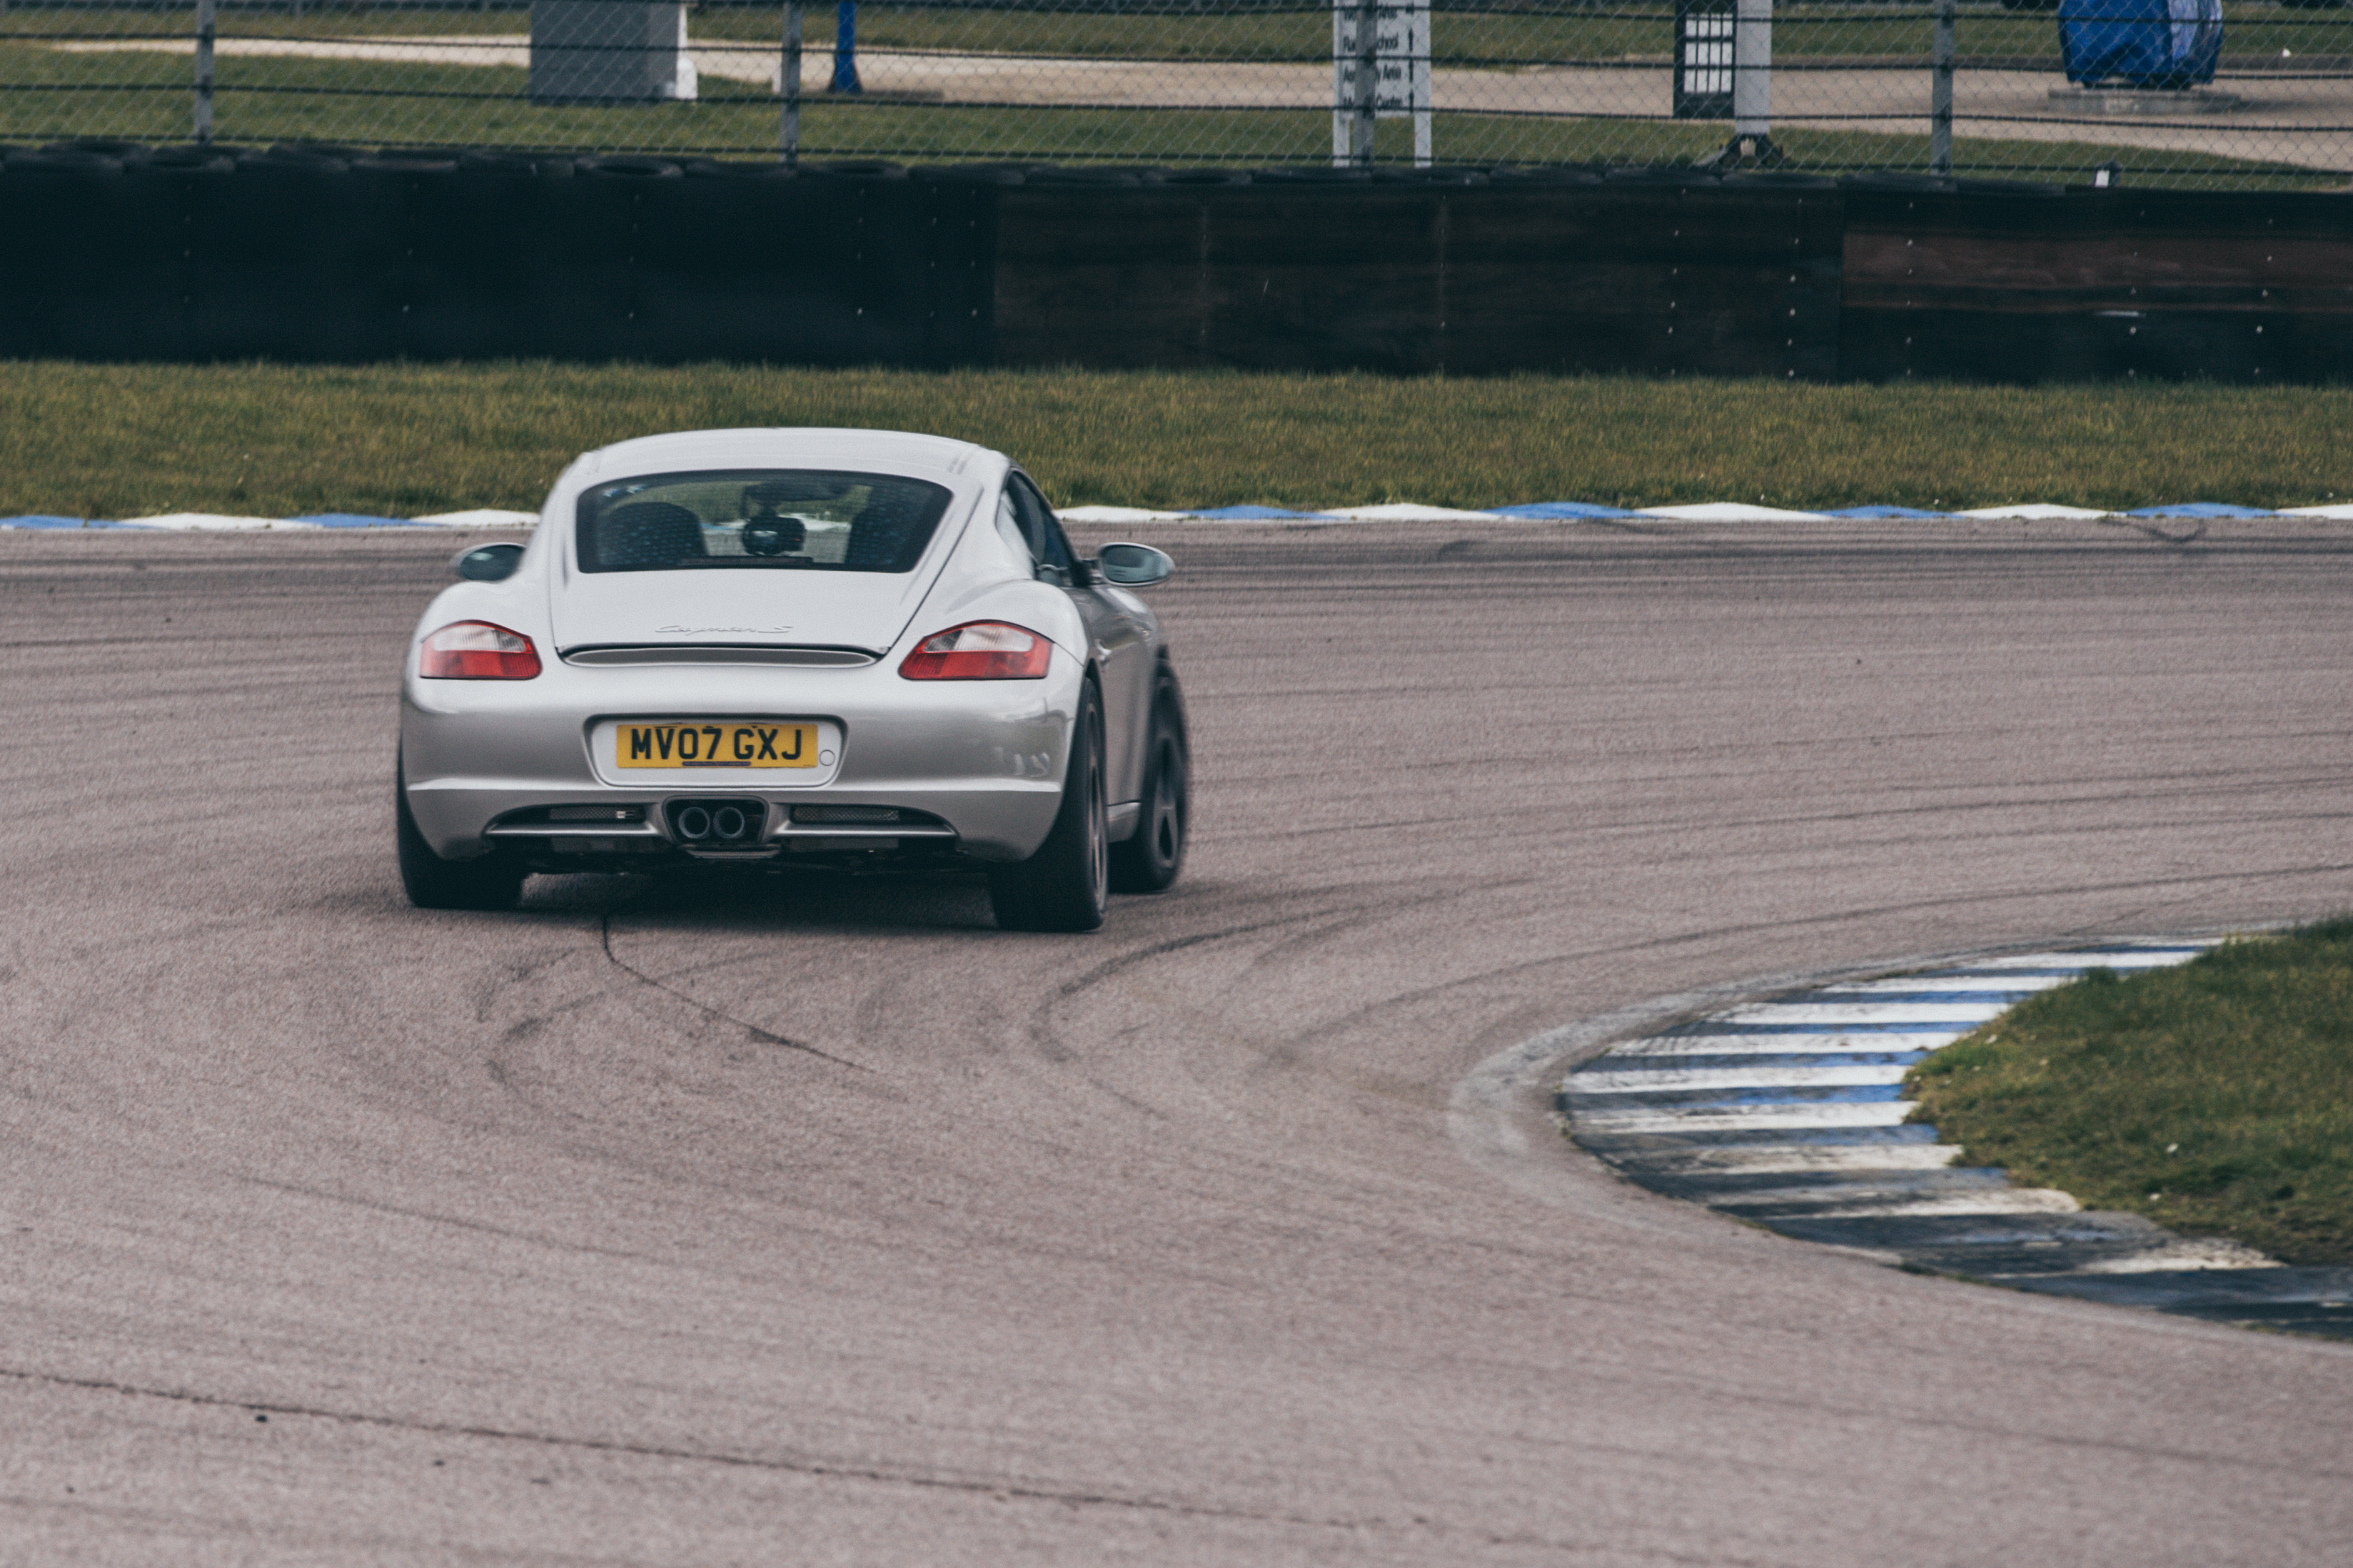 Customer Cayman S 987 Project Track Addict Track Day Regal Autosport